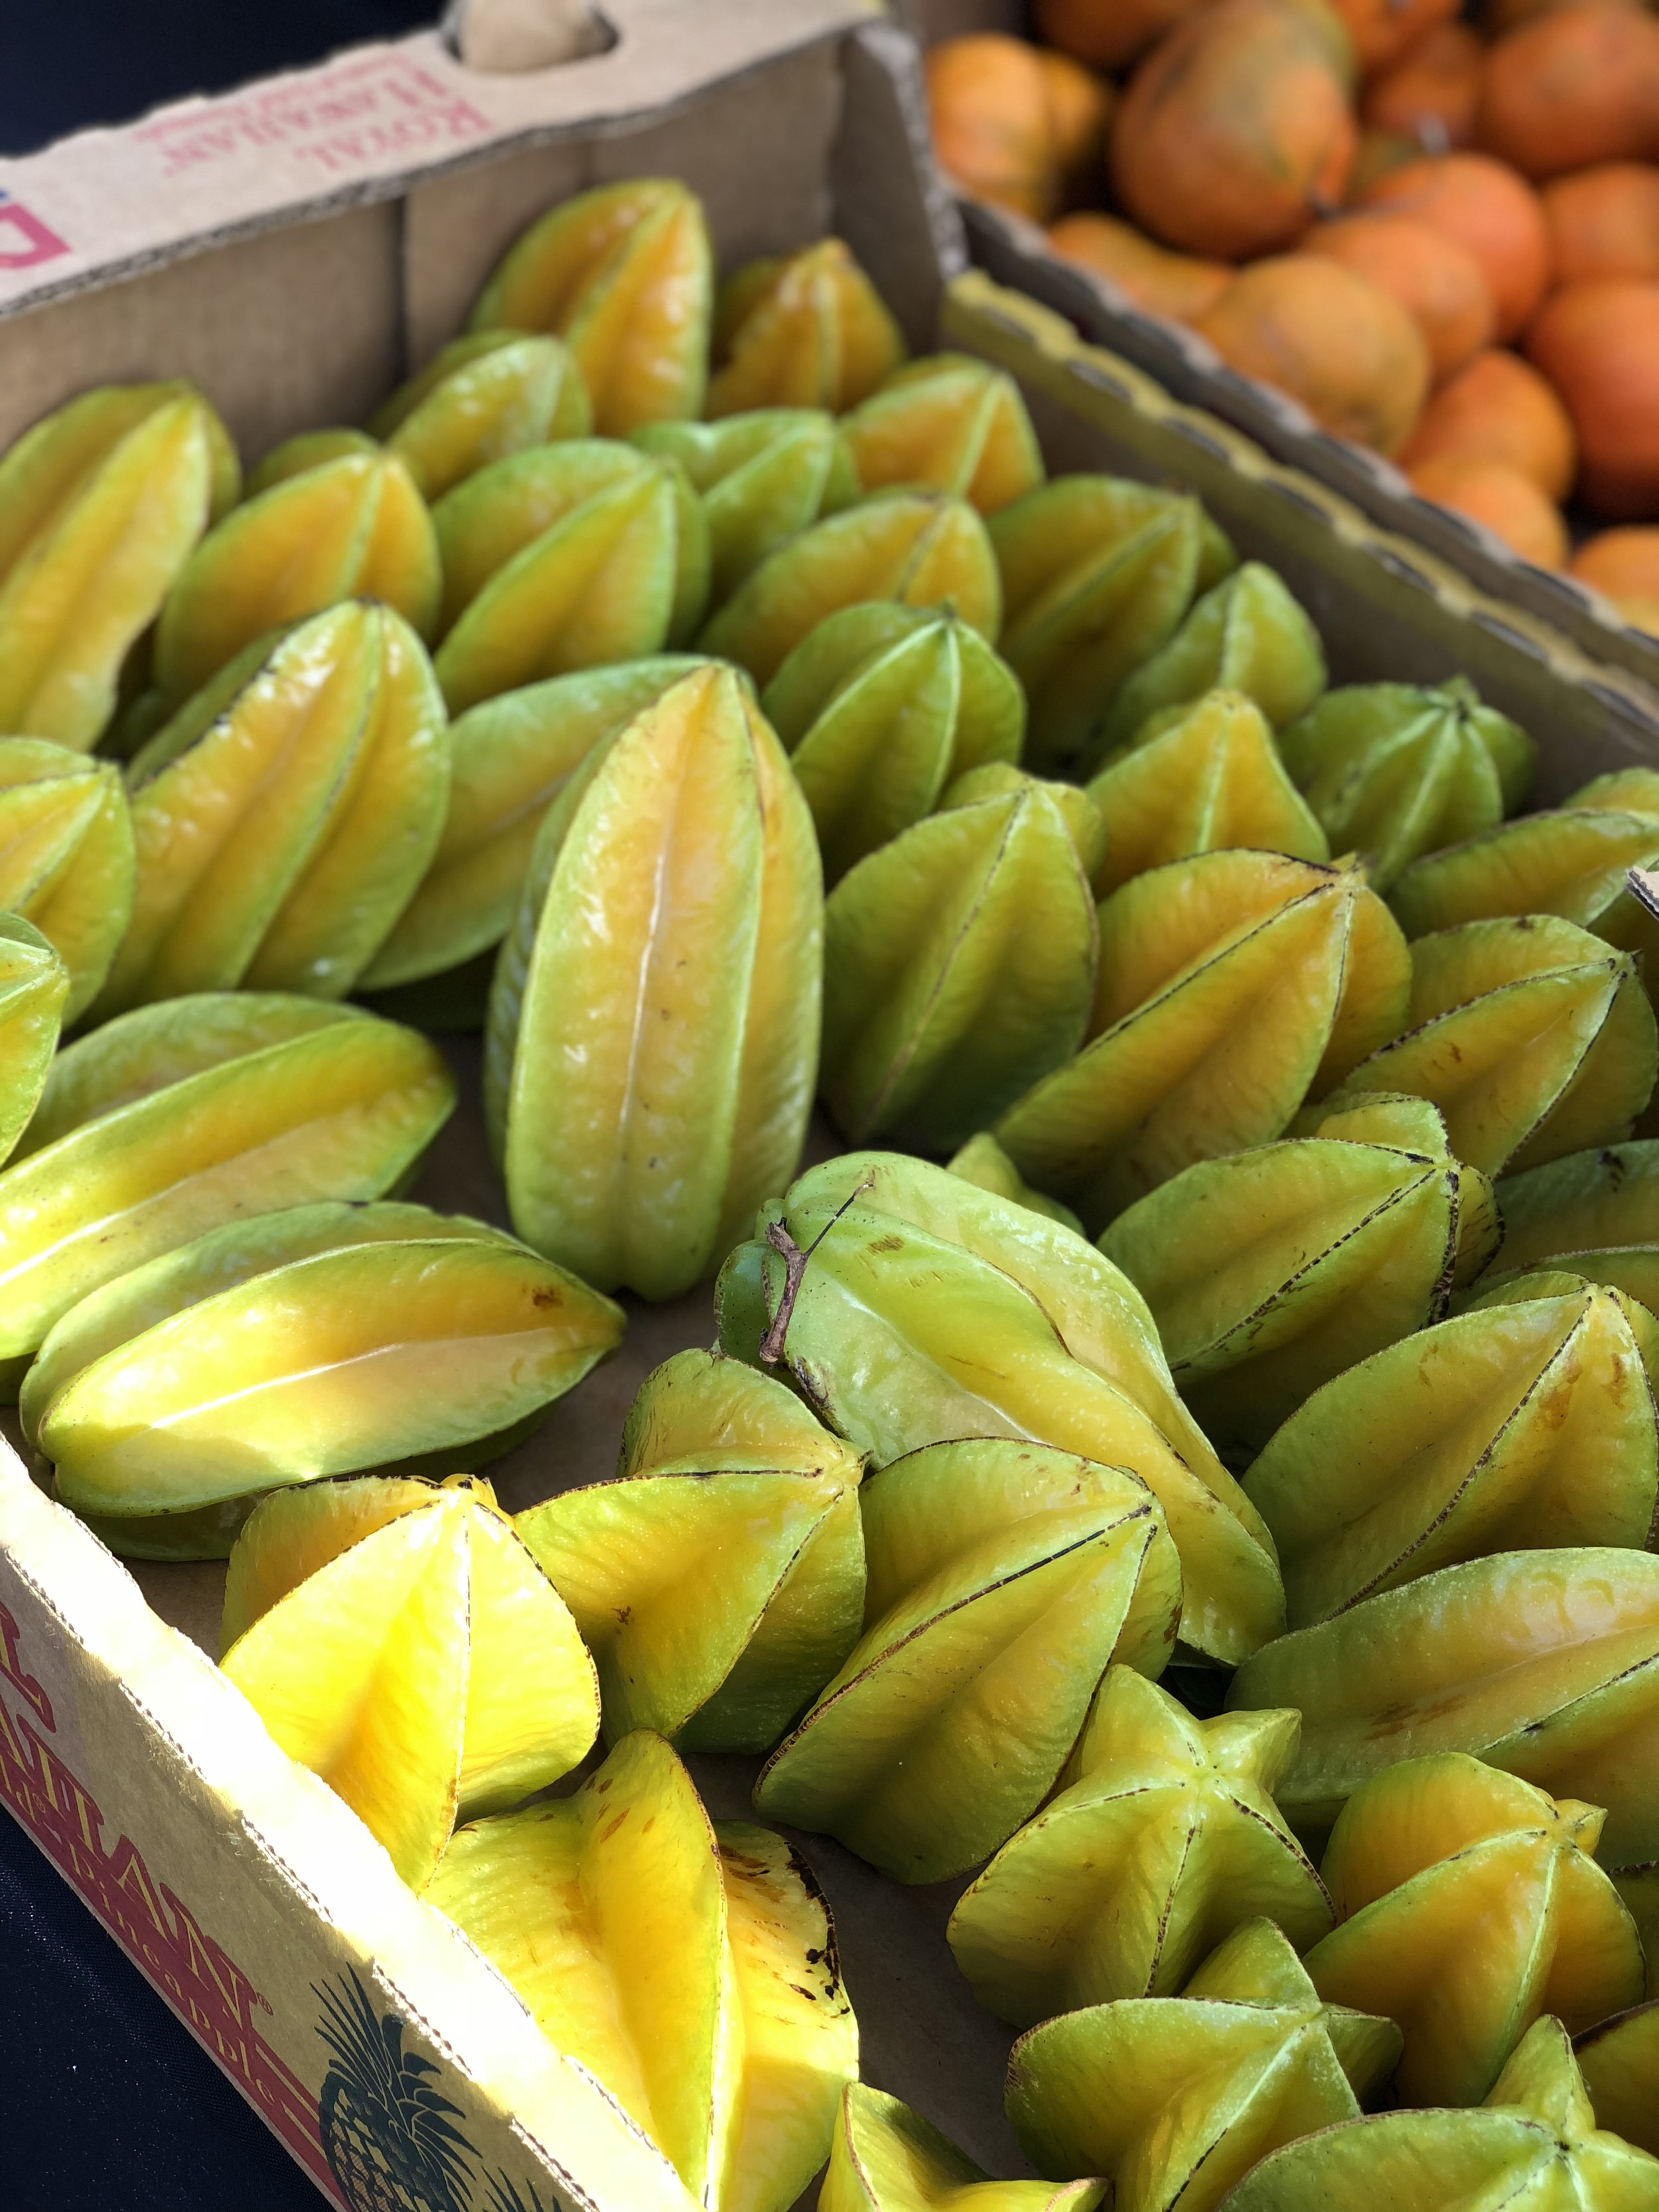 beautiful tropical fruit - Our toddler especially loved the starfruit, pictured here, as well as the rambutan.